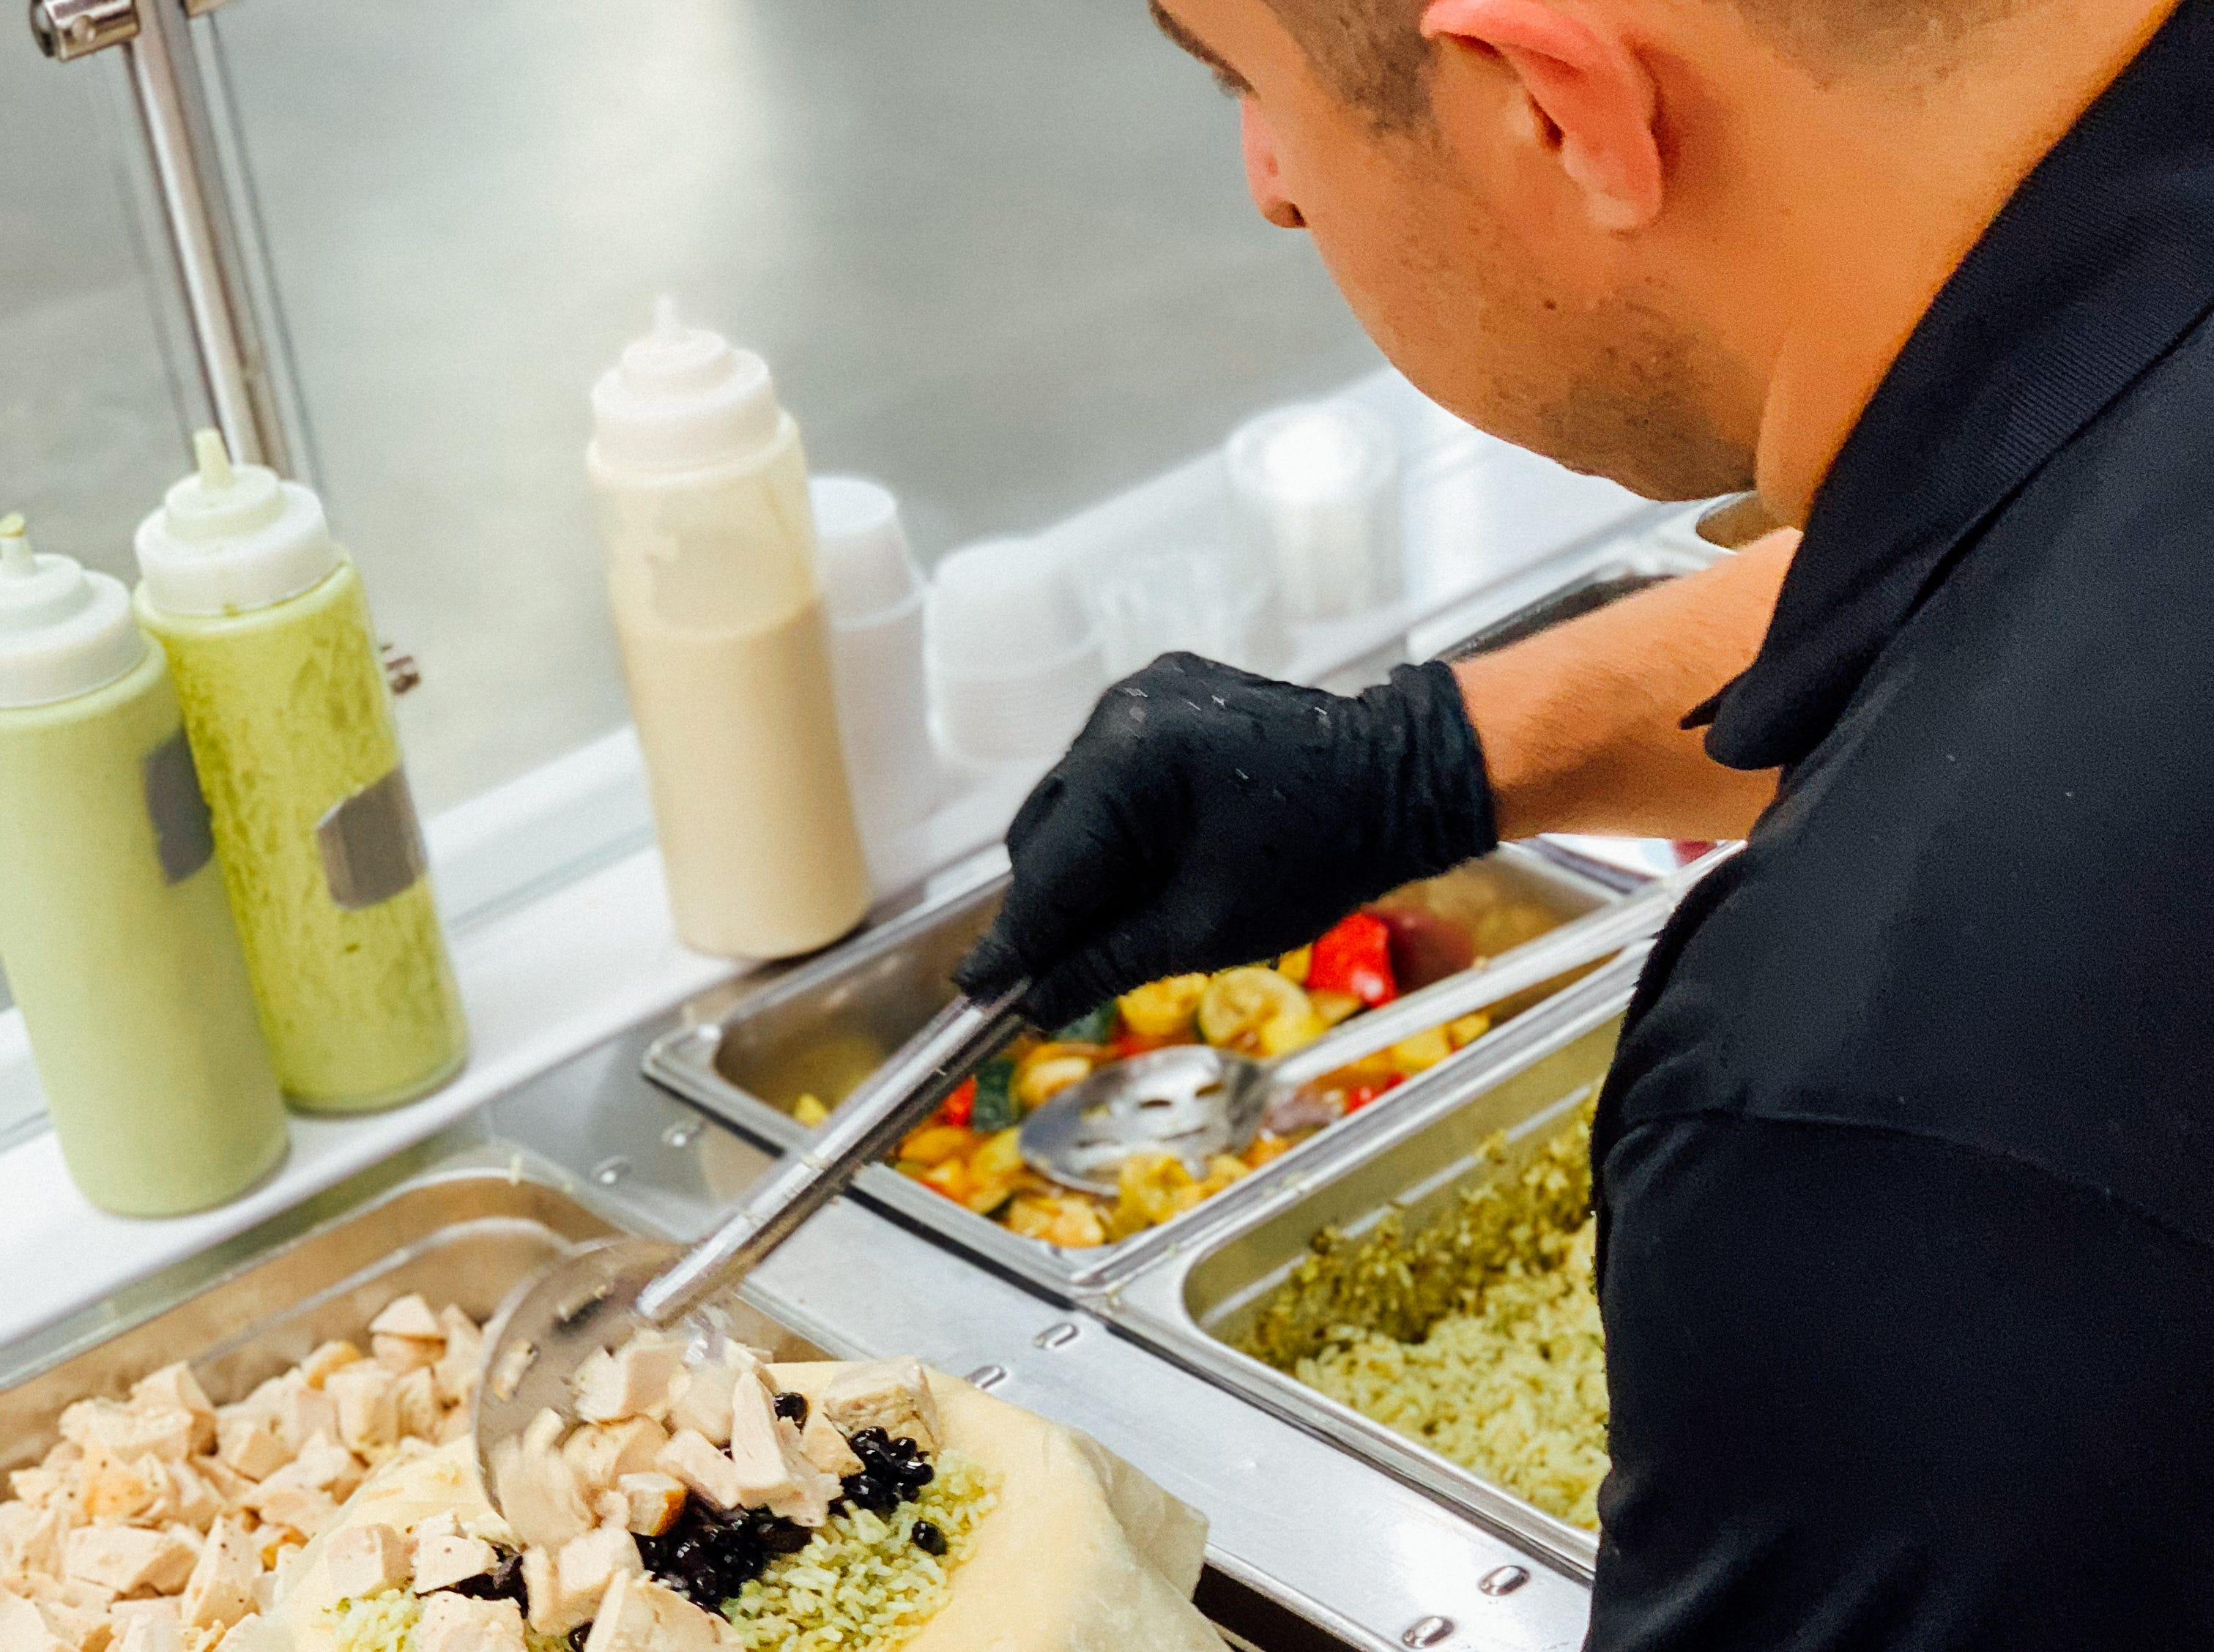 Roundabout Catering offers breakfast, soups, salads, sandwiches, burritos (here, a chicken and black bean version), and grab-and-go items in the main cafeteria of the Tesla Gigafactory east of Reno.